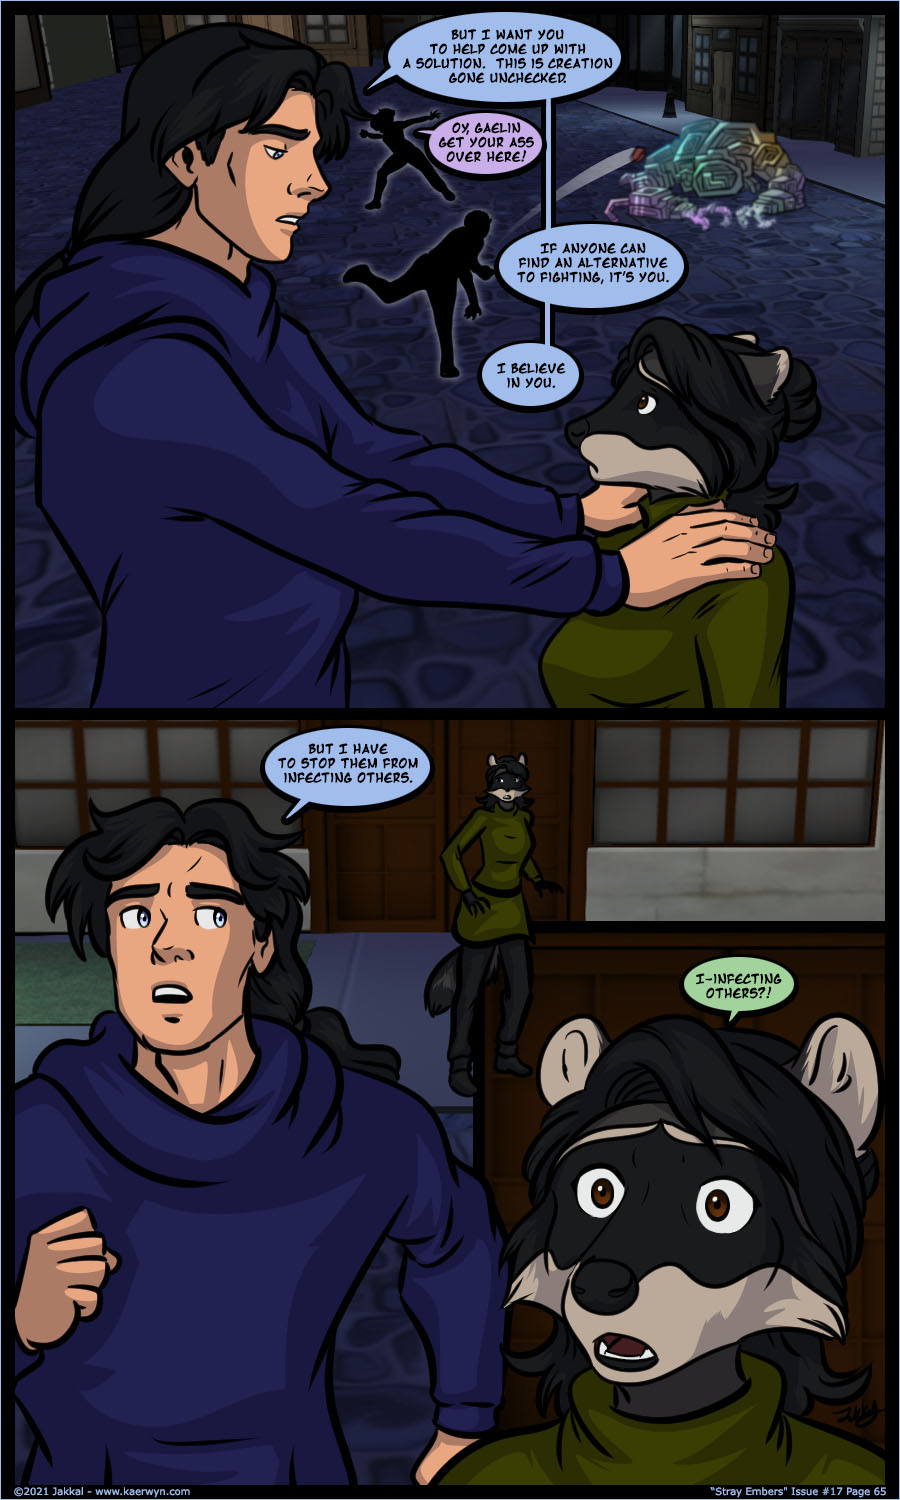 Issue 17 page 65